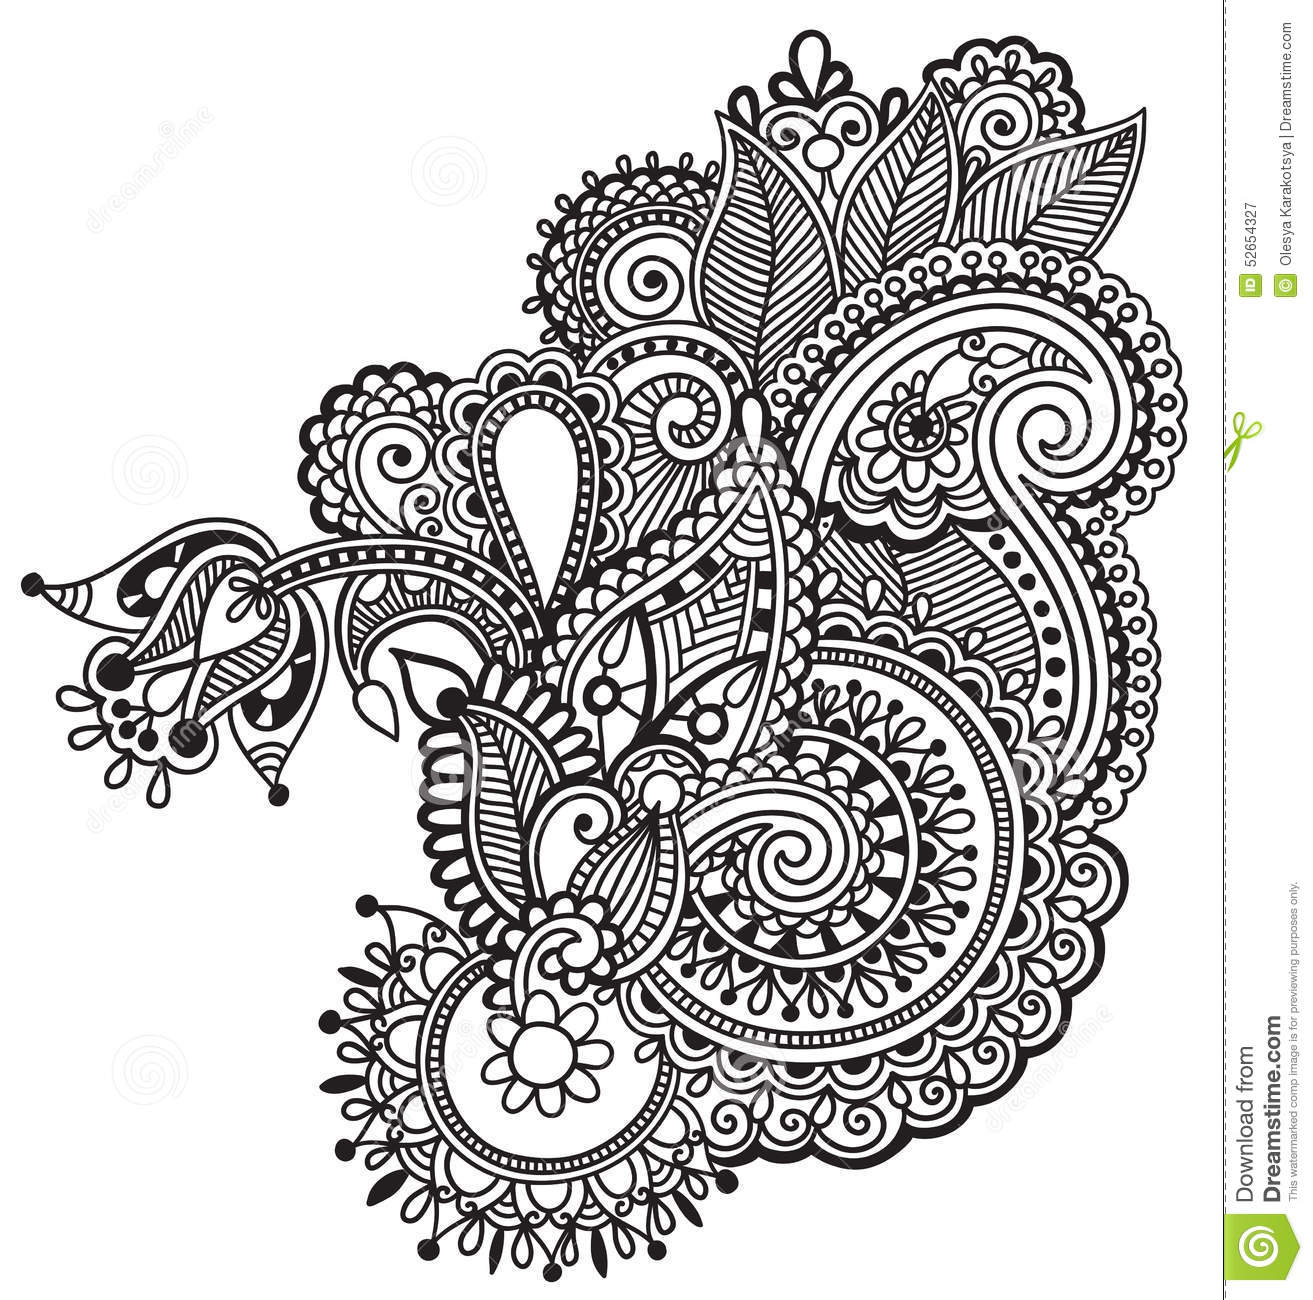 New Line Art Design : Black line art ornate flower design ukrainian stock